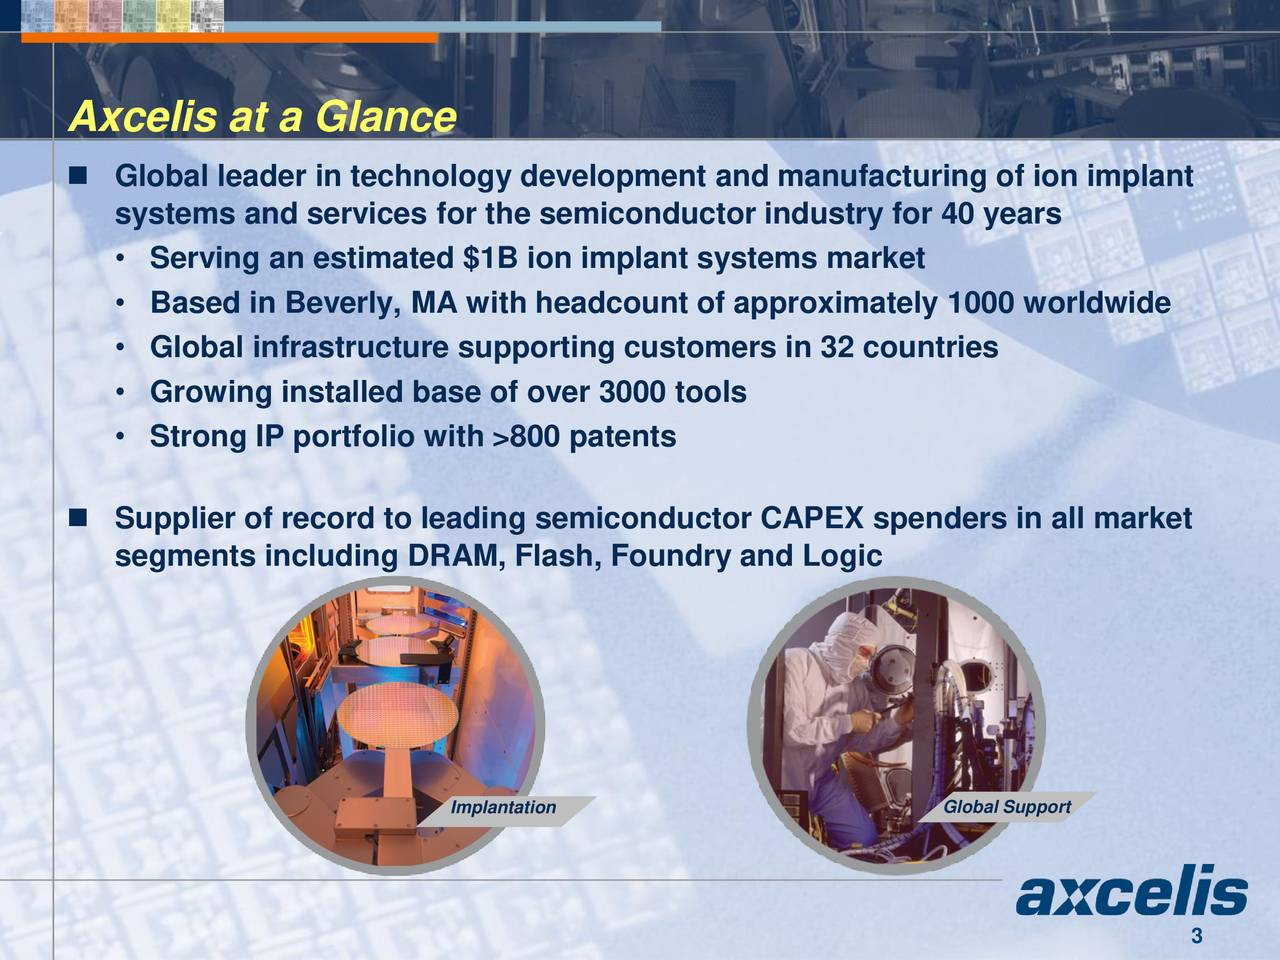  Global leader in technology development and manufacturing of ion implant systems and services for the semiconductor industry for 40 years • Serving an estimated $1B ion implant systems market • Based in Beverly, MA with headcount of approximately 1000 worldwide • Global infrastructure supporting customers in 32 countries • Growing installed base of over 3000 tools • Strong IP portfolio with >800 patents  Supplier of record to leading semiconductor CAPEX spenders in all market segments including DRAM, Flash, Foundry and Logic Implantation Global Support 3